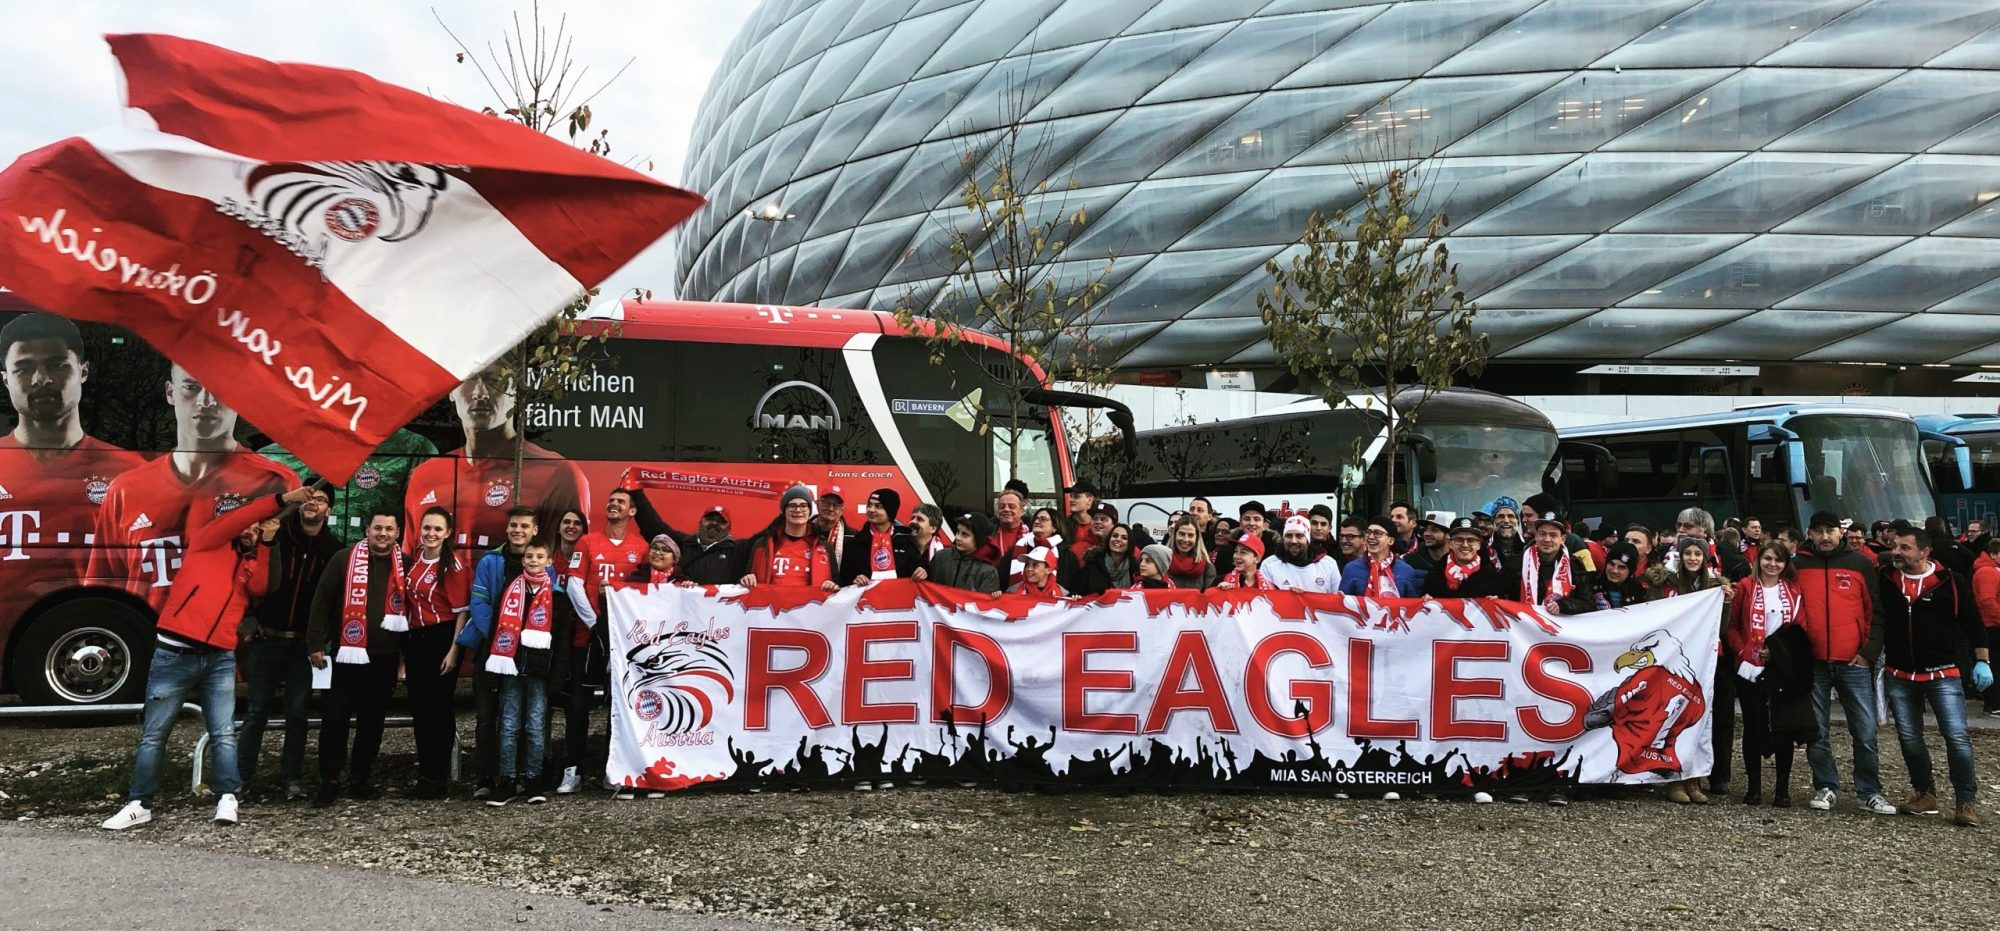 Red Eagles Austria